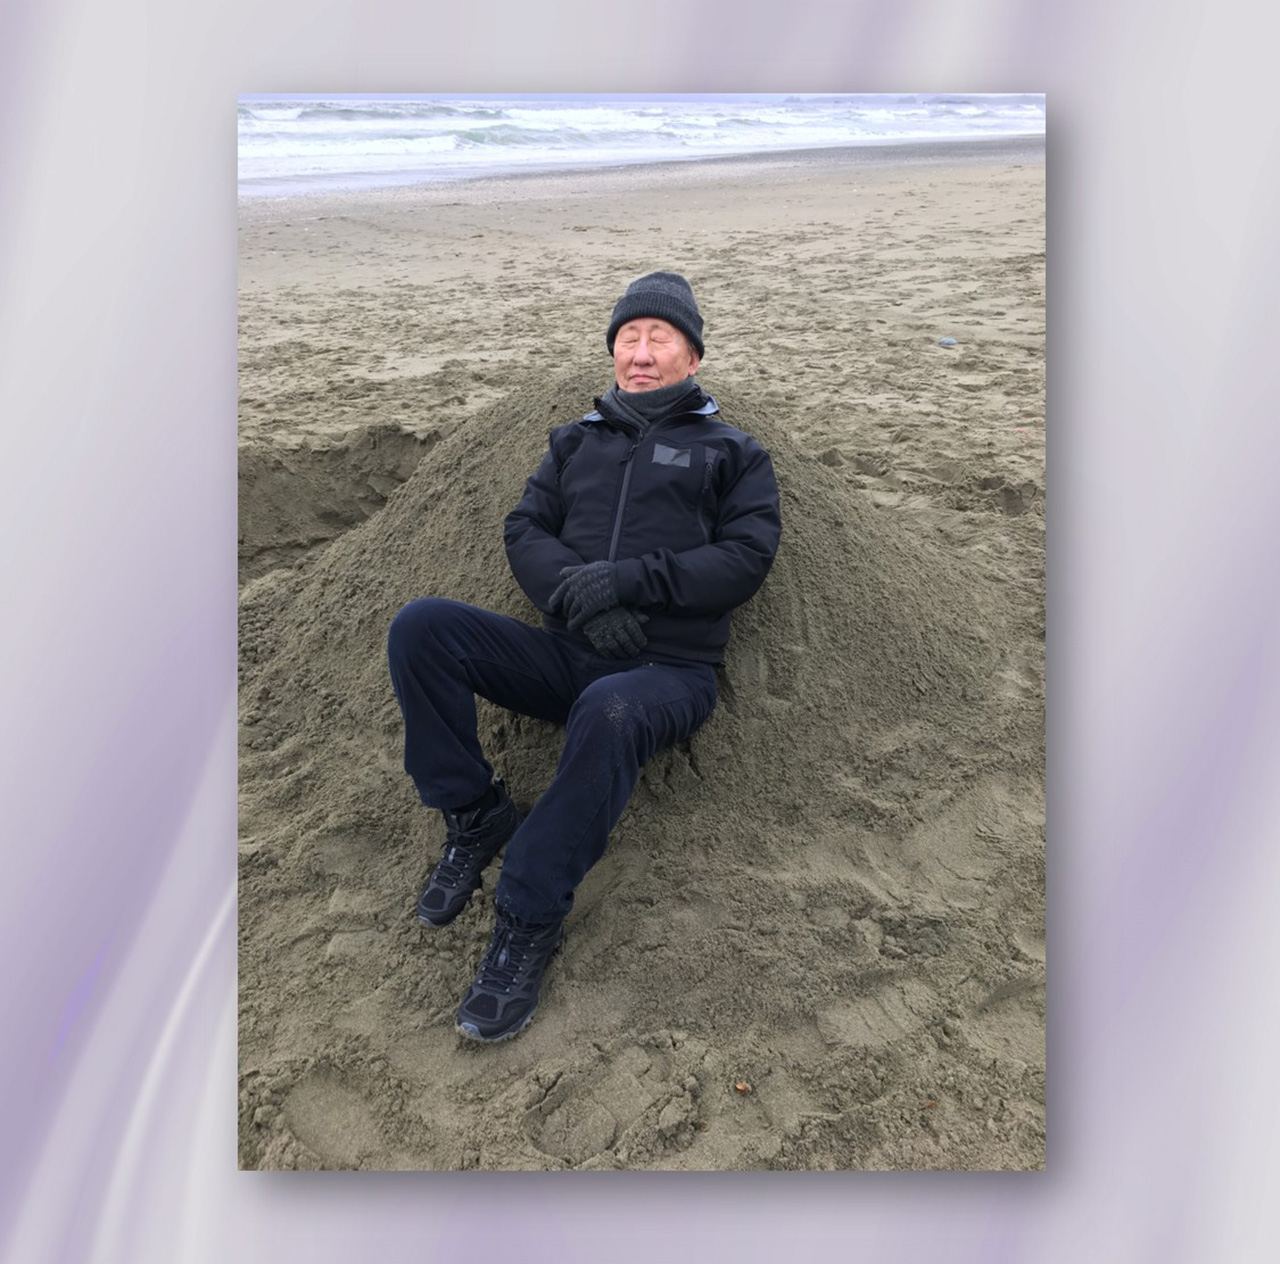 Dr Yoon Myung Choong at the beach